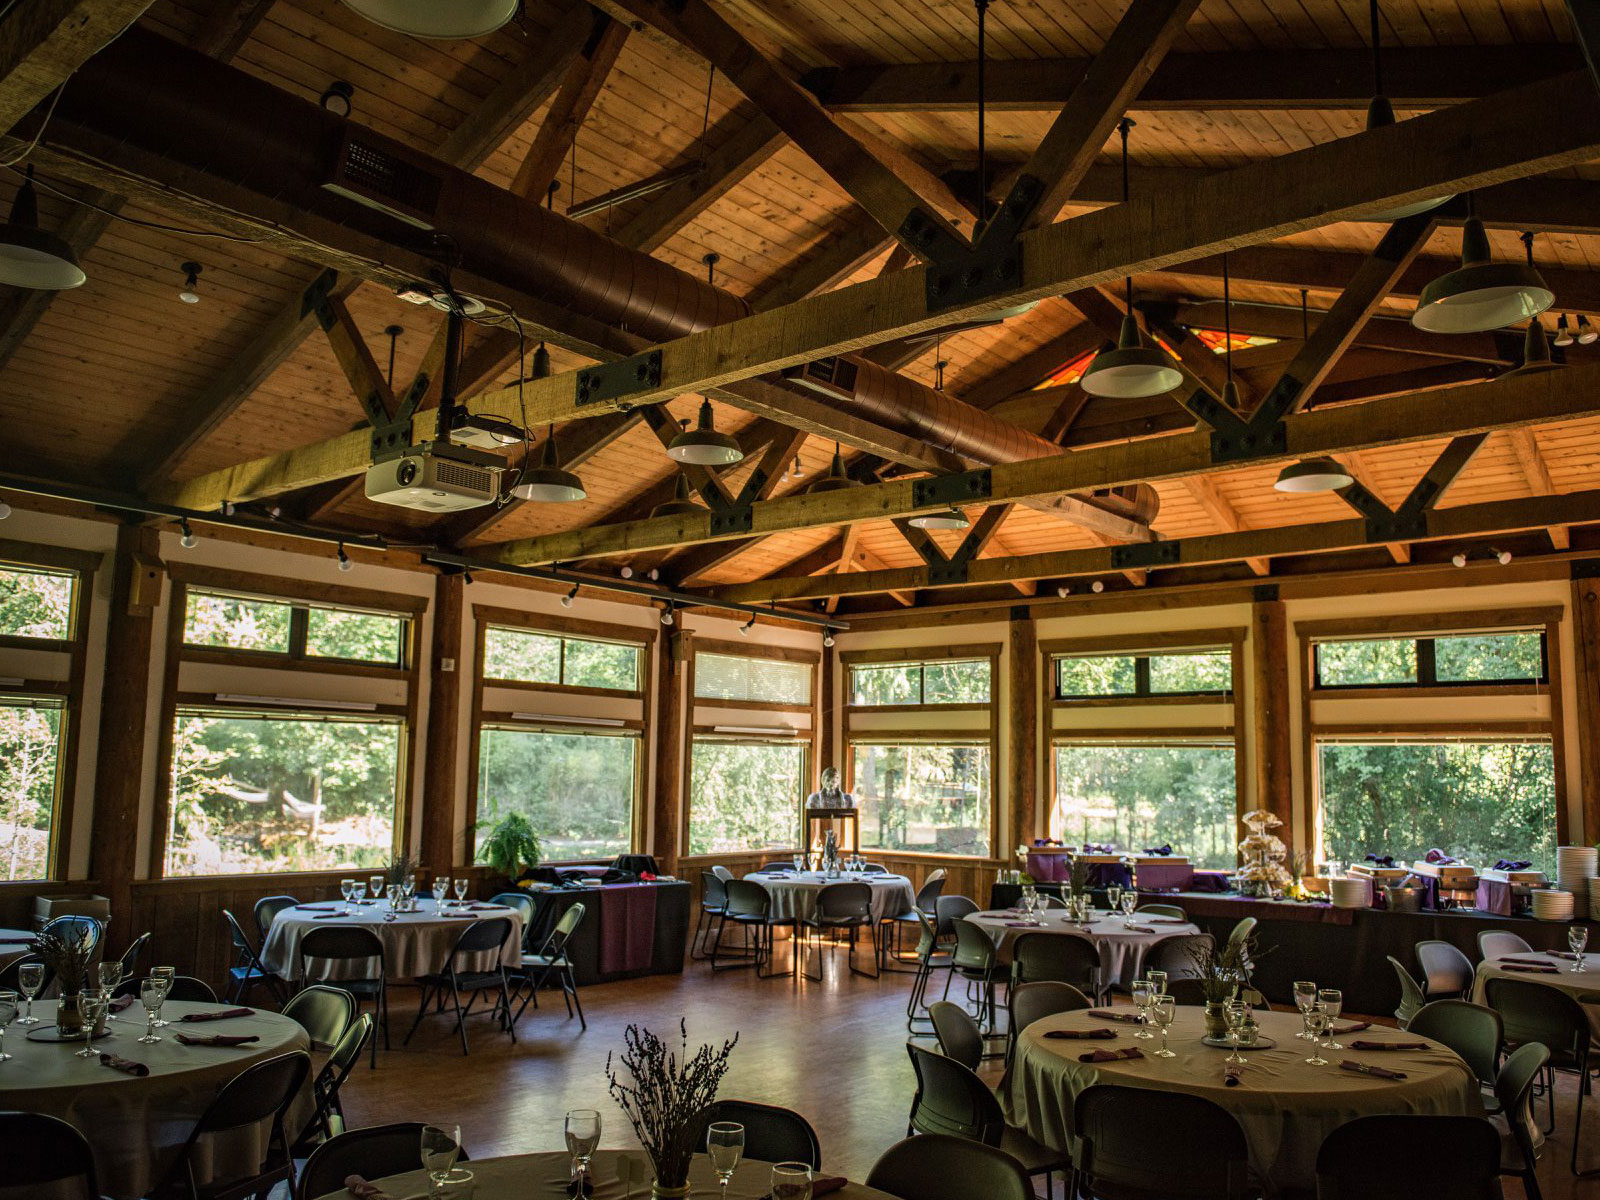 The inside of the Environmental Learning Center's Lakeside Hall, featuring decorated tables, glassware and catered drinks